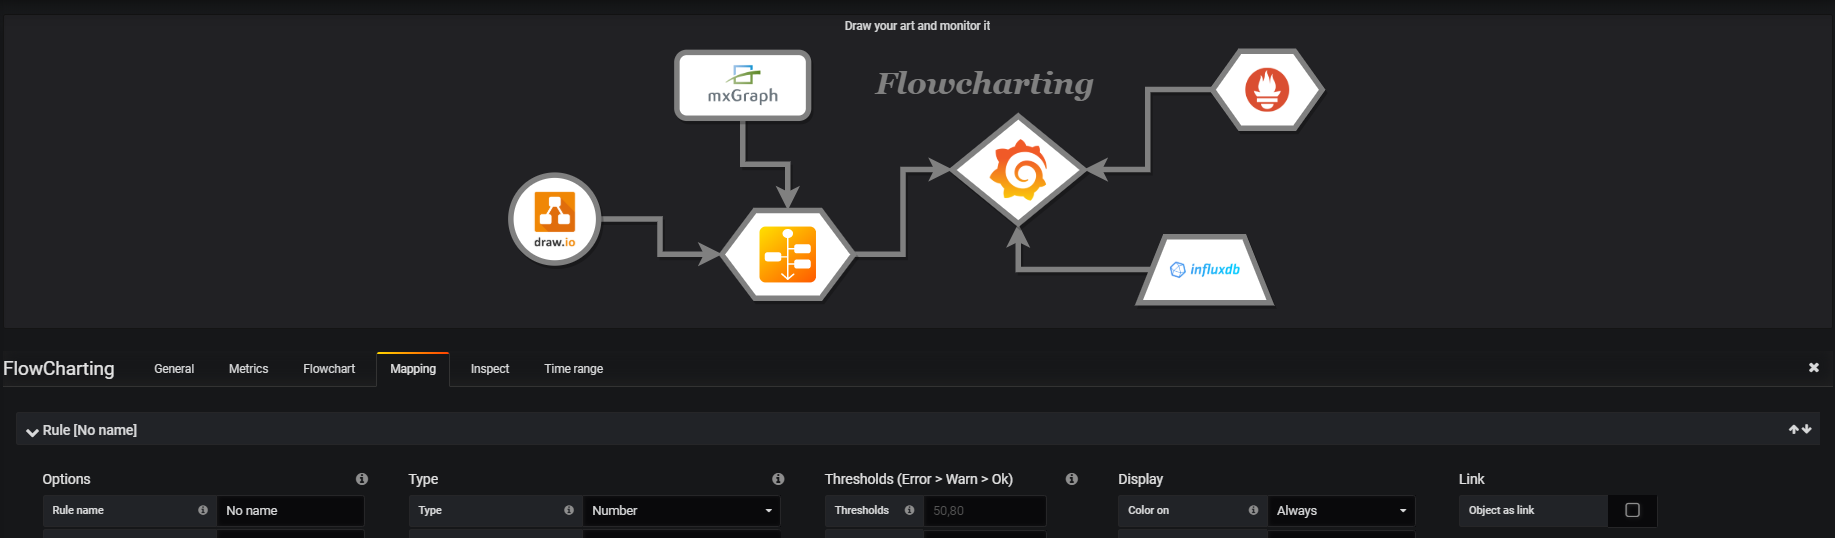 New plugin base on mxgraph and draw io editor to draw complexe